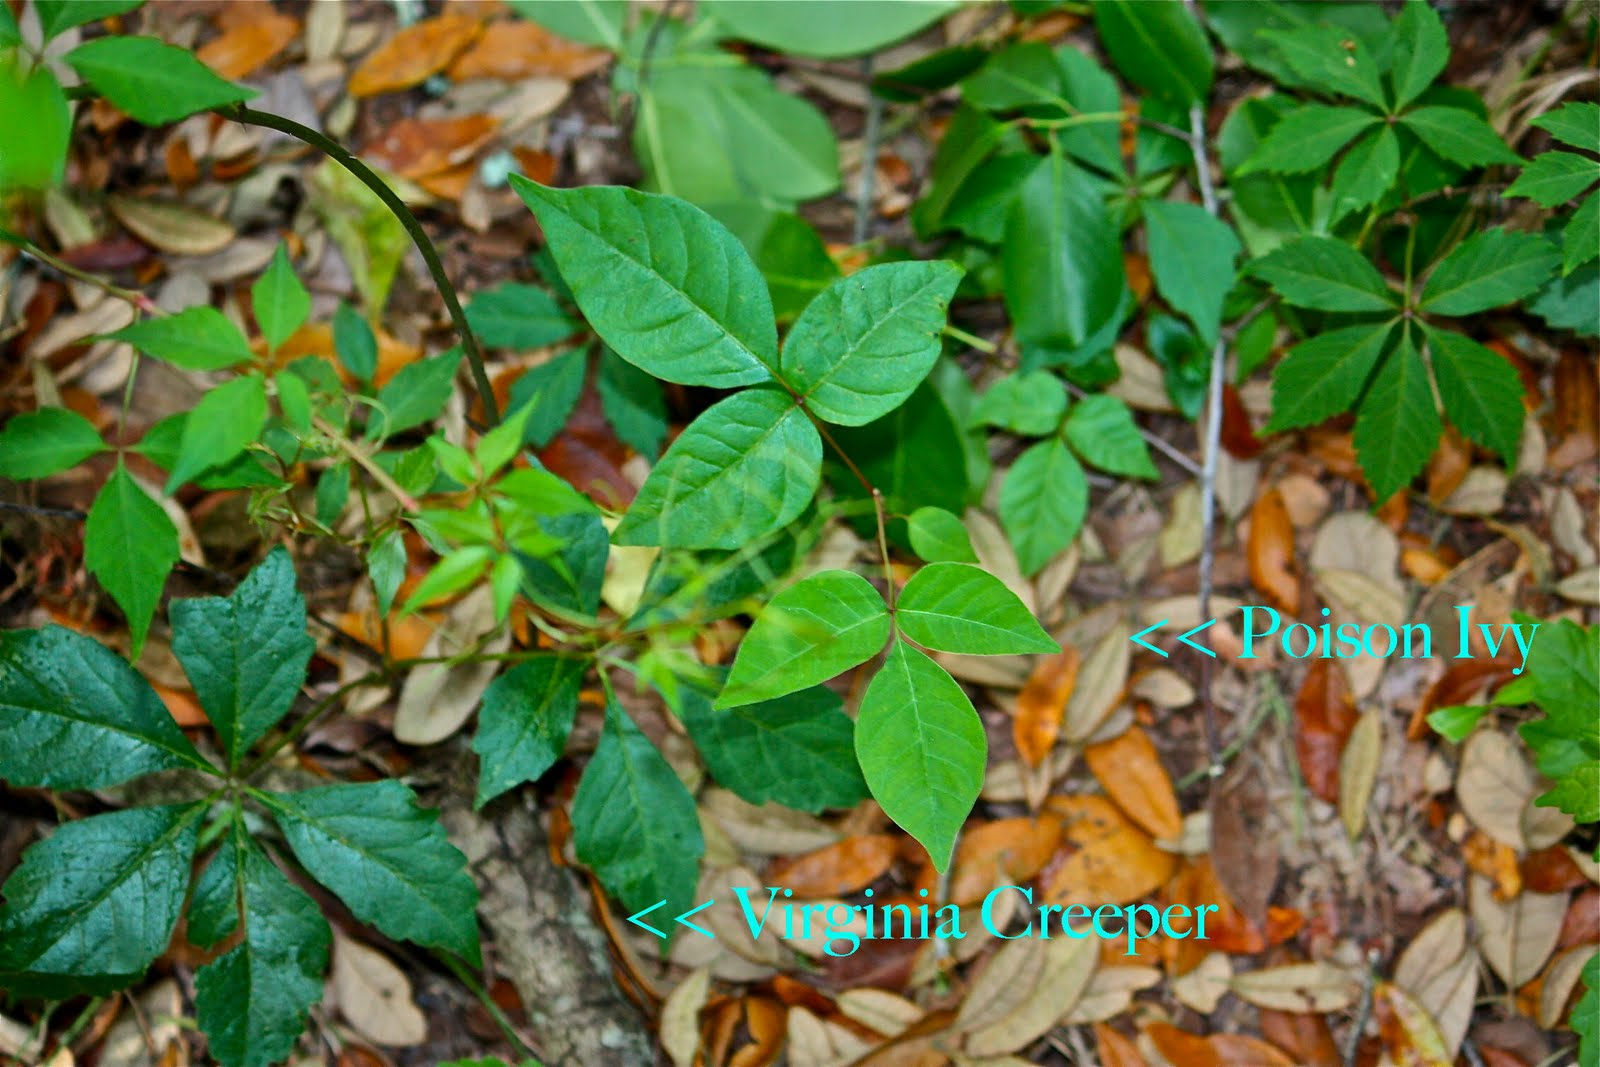 Identify the Plant | The Poison Ivy, Poison Oak, Poison ...